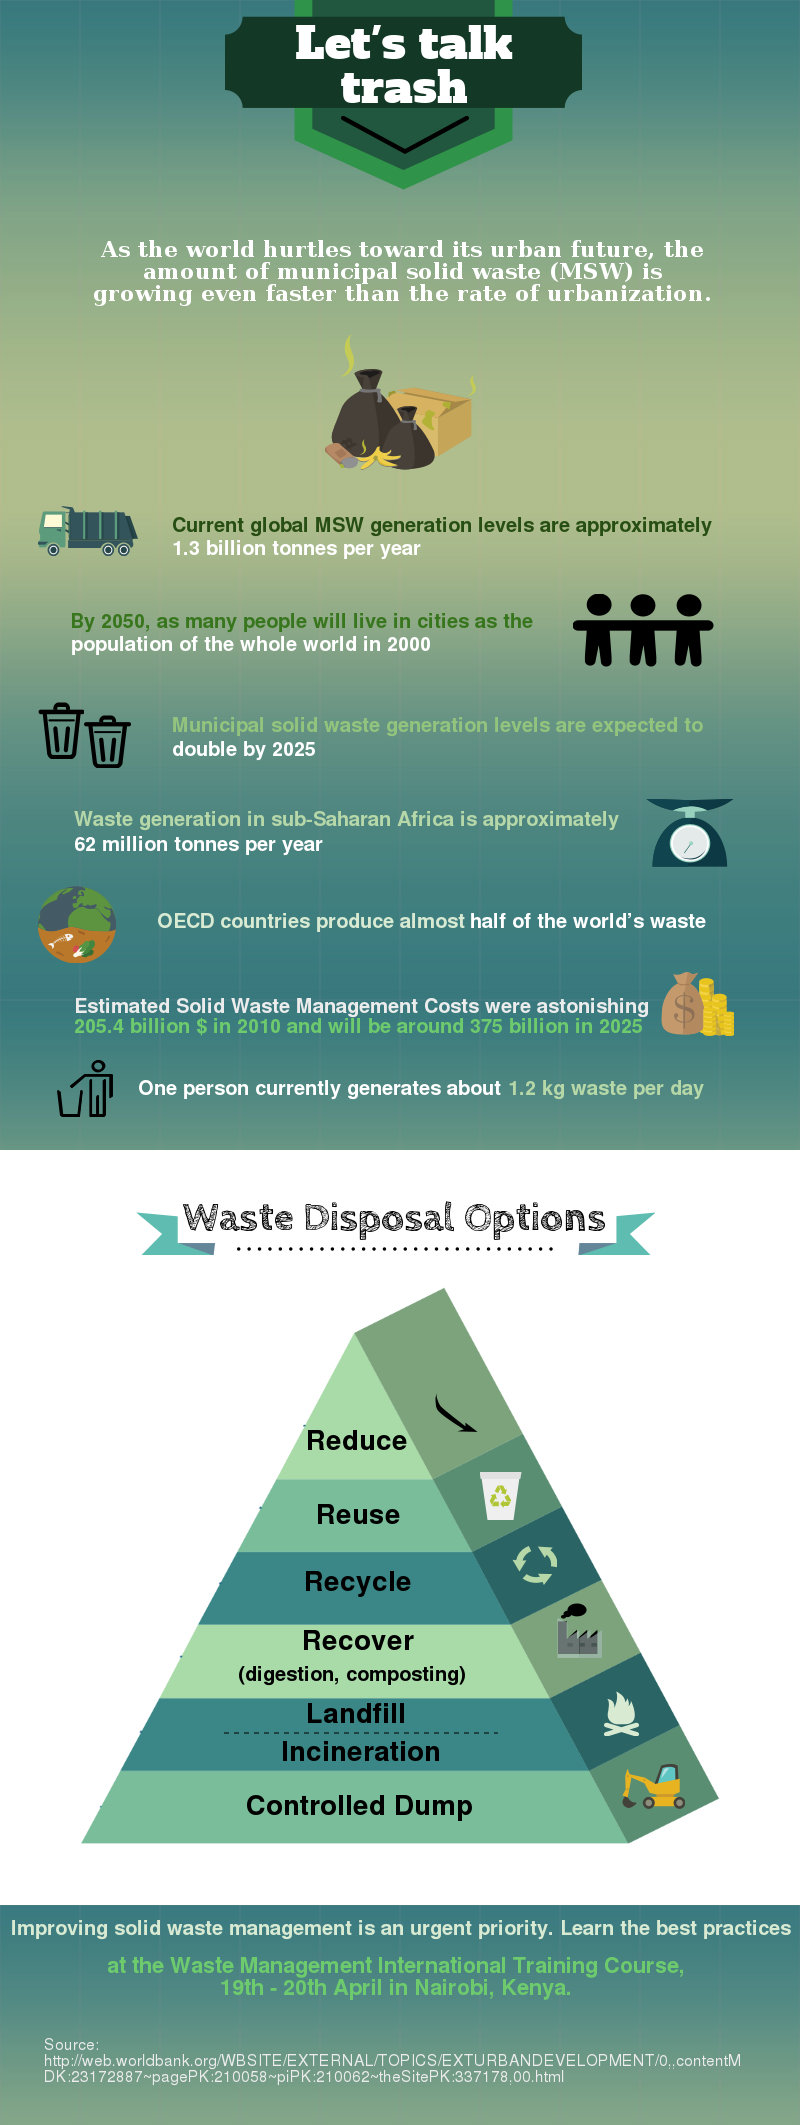 Let's talk trash - infographic